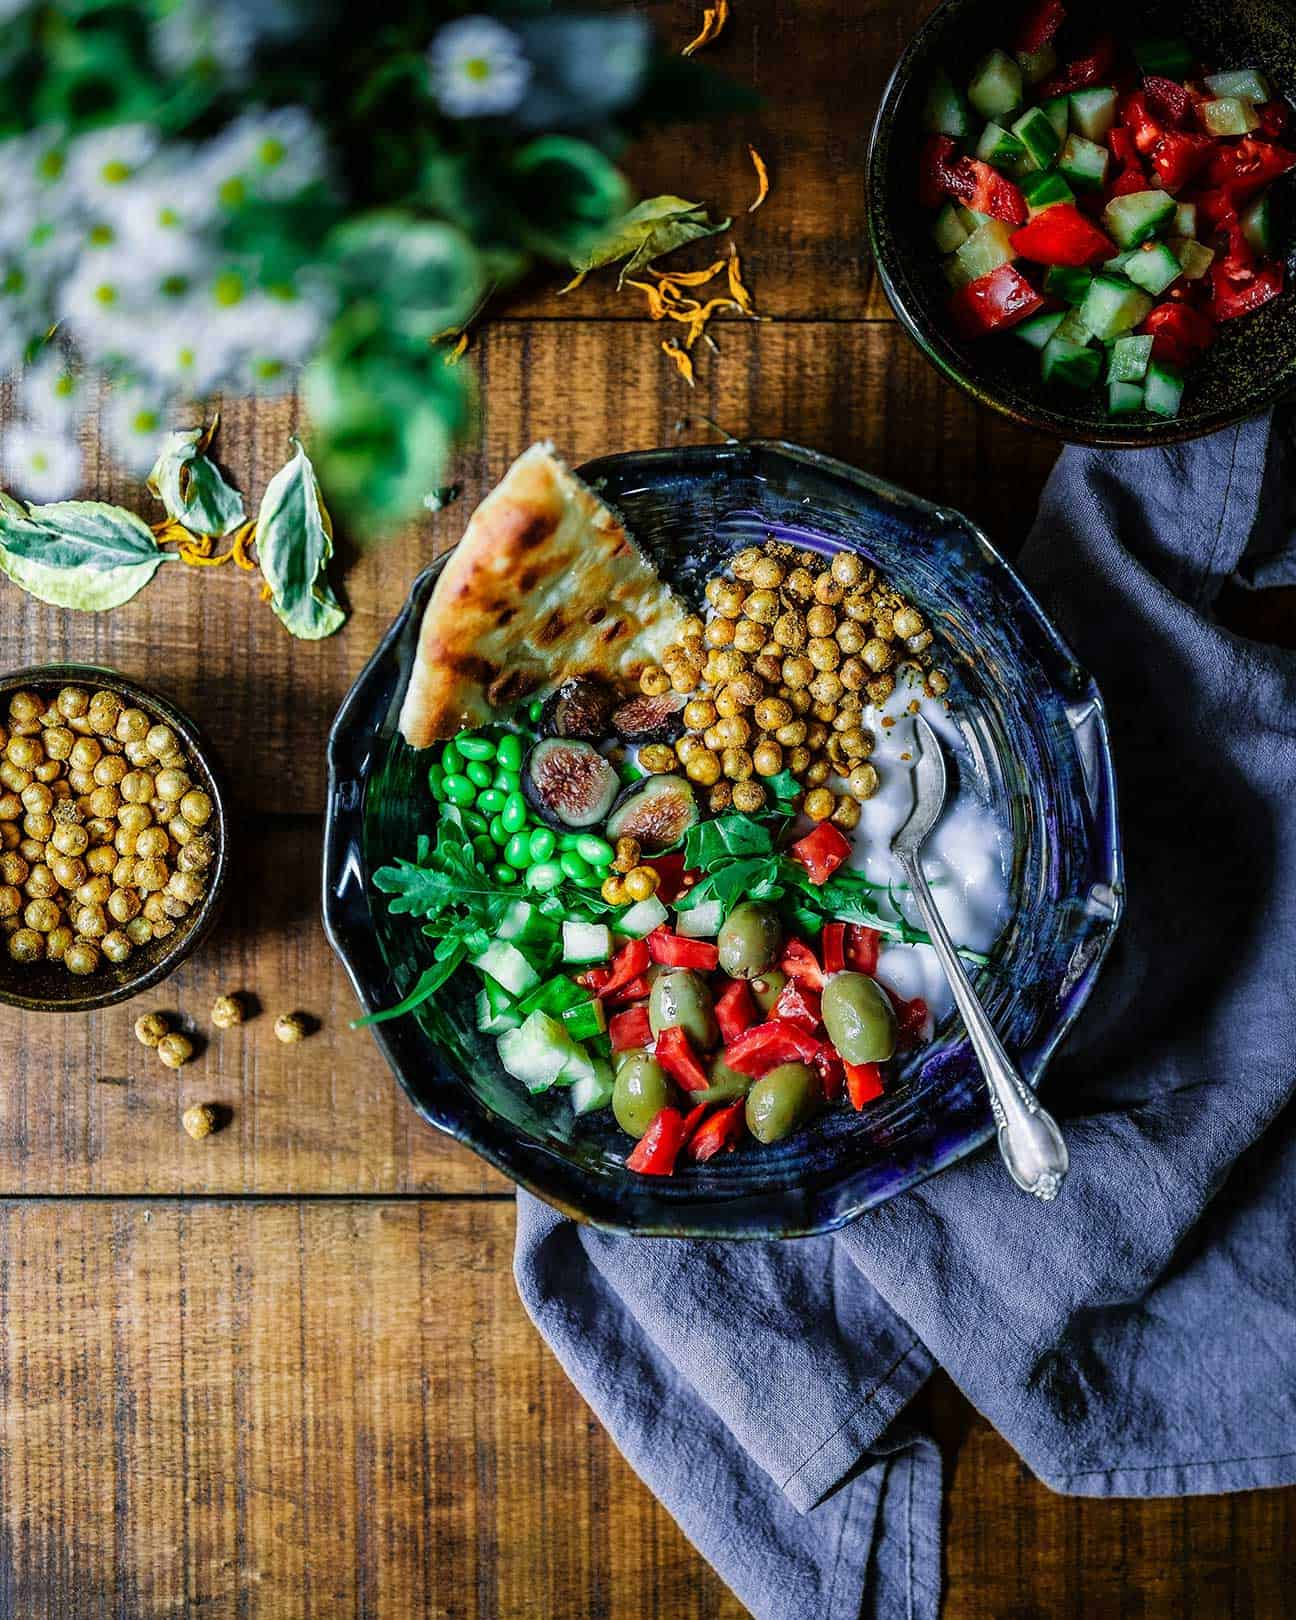 Why eating a diet rich in plants is so important?